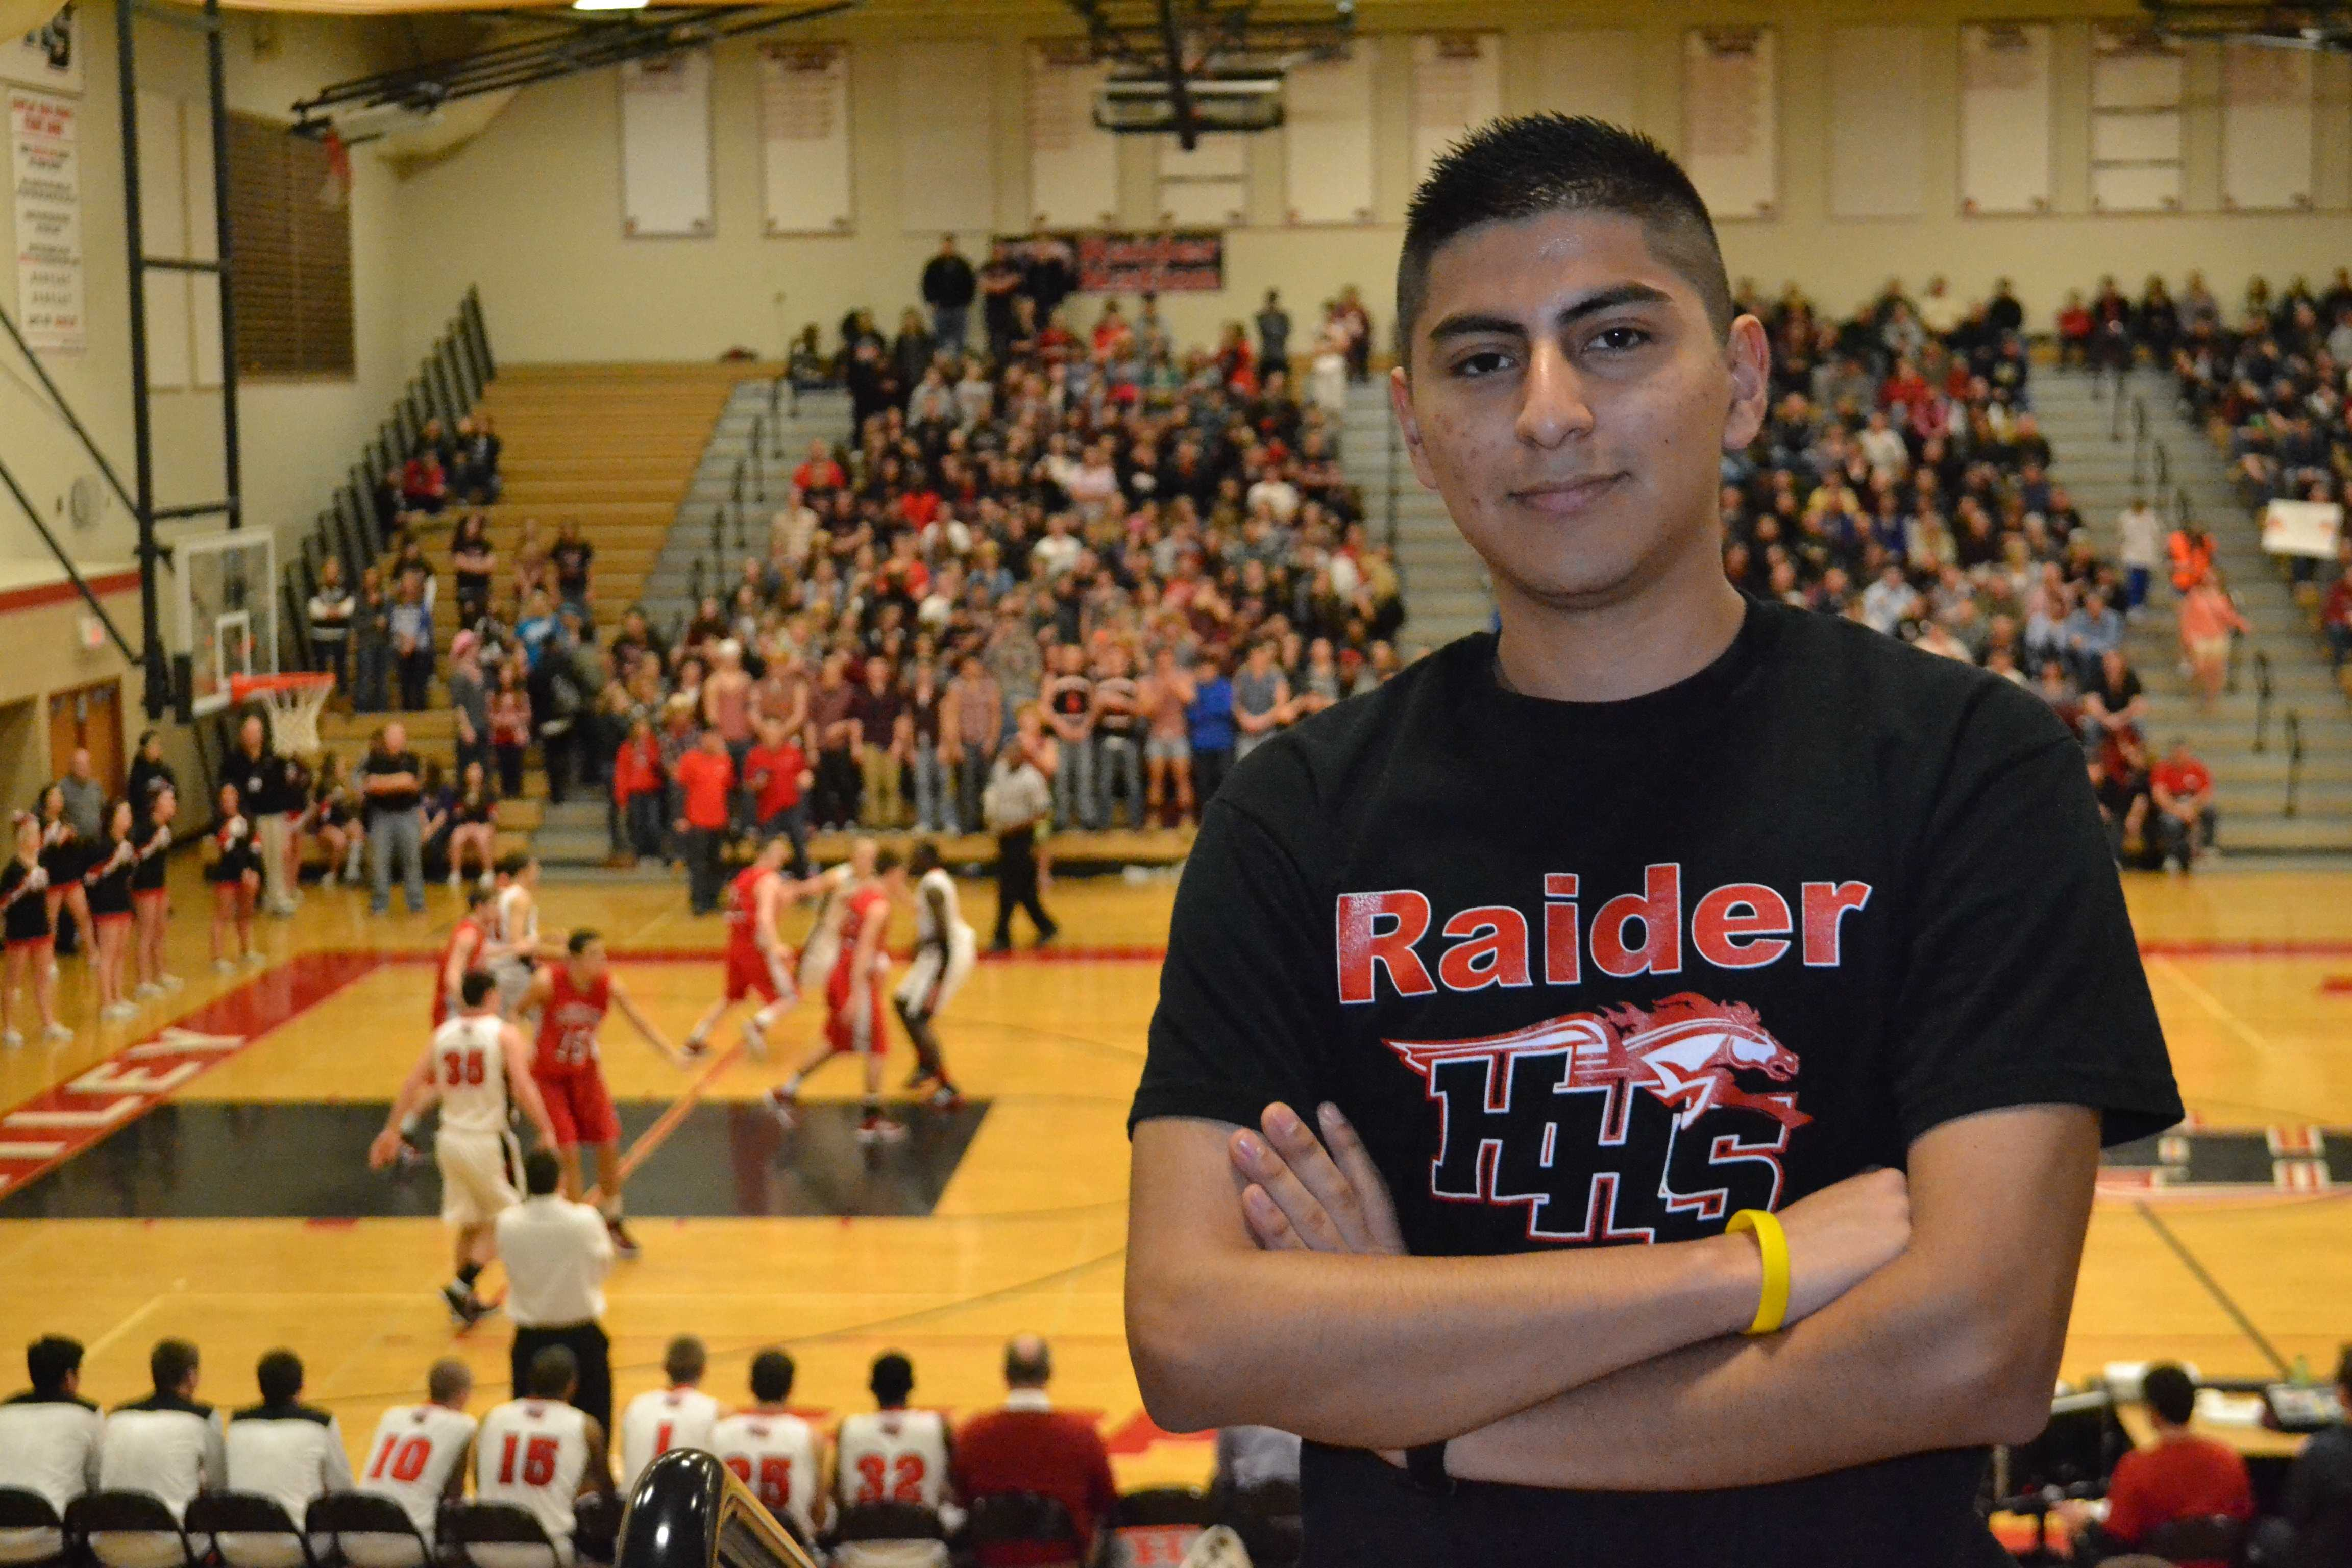 Junior Roger Alverado manages the team proudly on and off the court (M. Krebs).